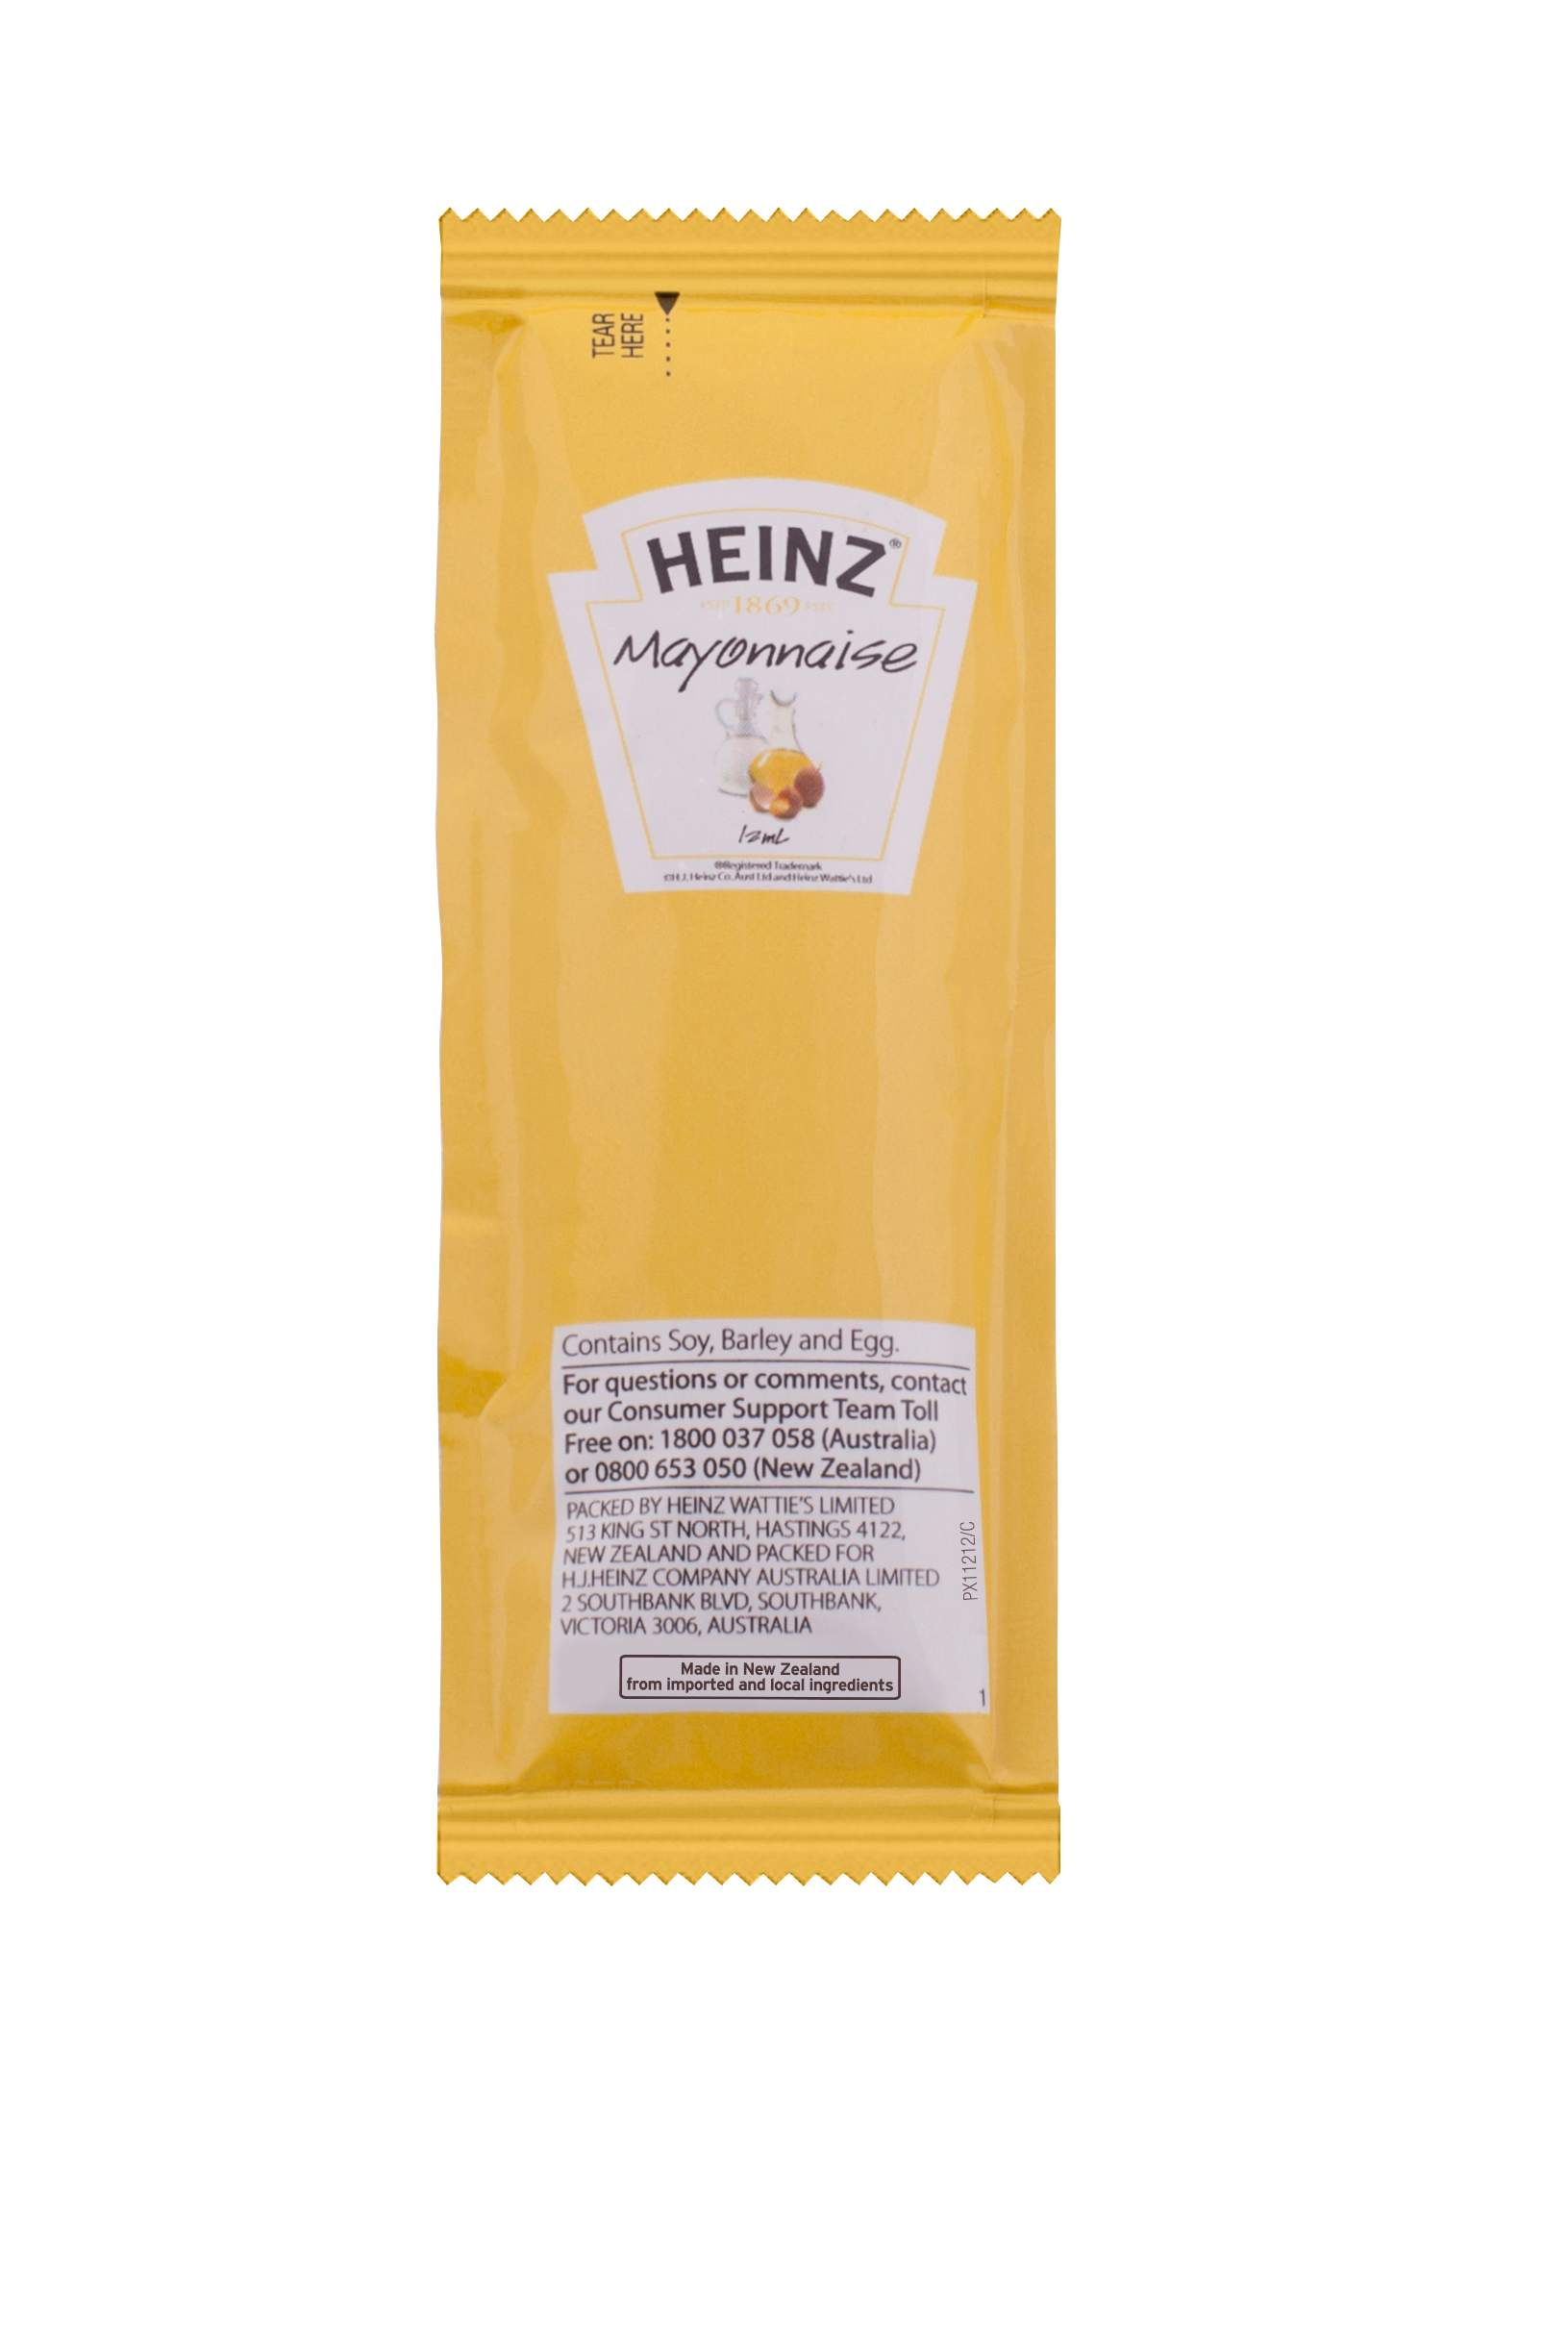 12mL Heinz Mayonnaise Sachet